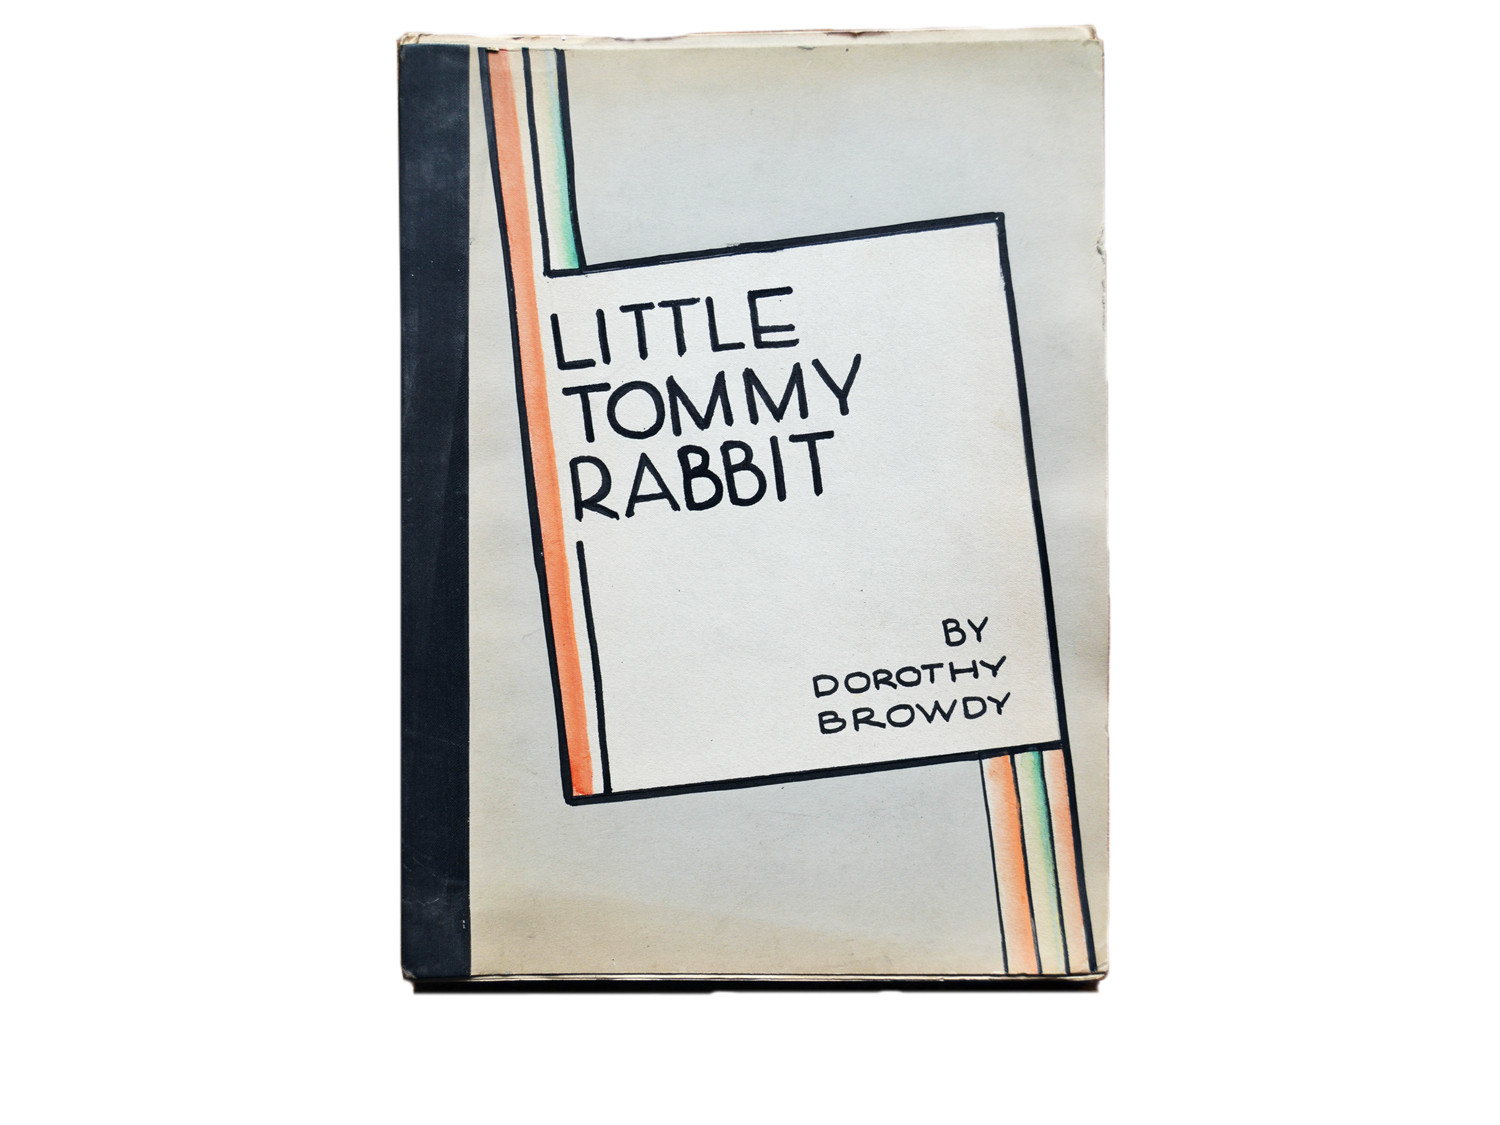 Rabbit Book Cover 1